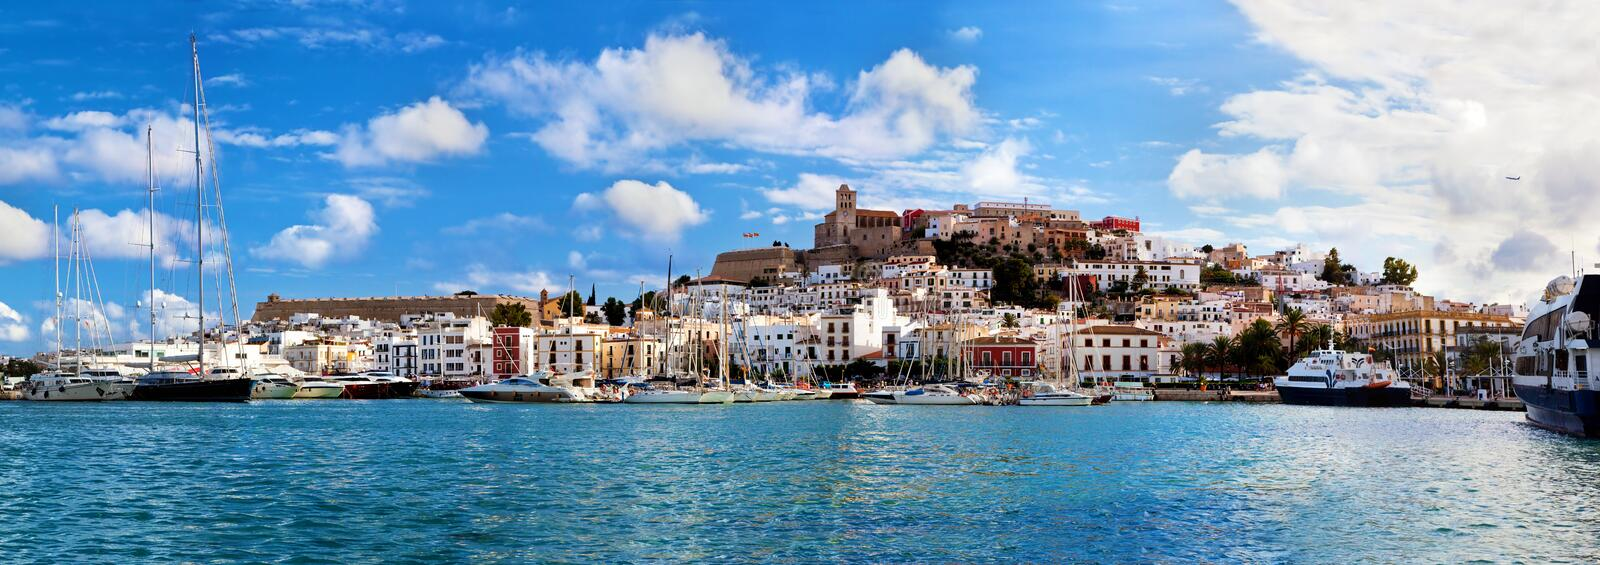 Panorama de Ibiza, Spain foto de stock royalty free